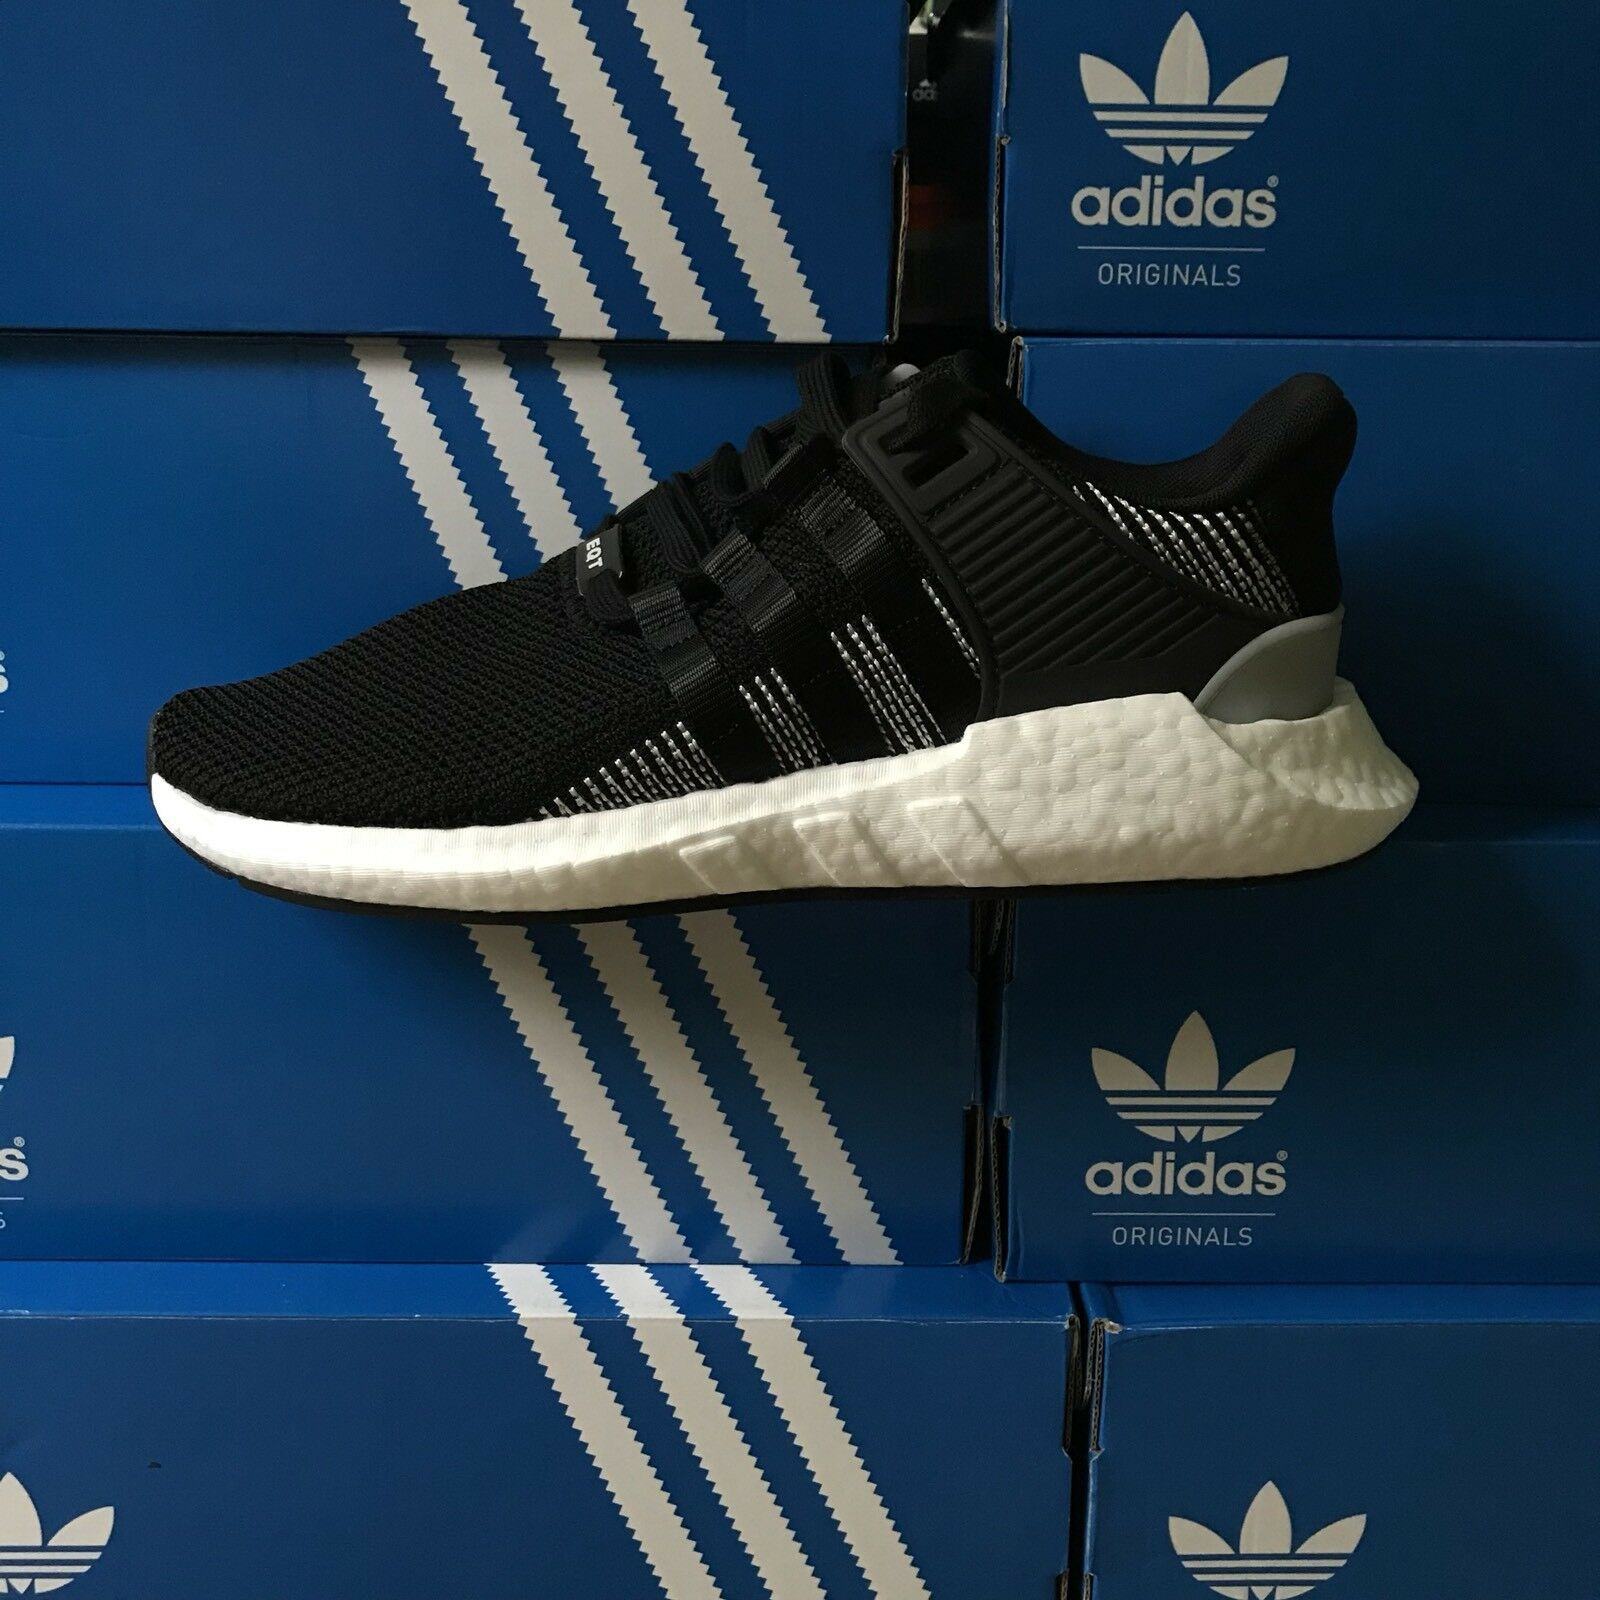 Adidas EQT 12 Support 93/17 Boost Size 12 EQT Core Black White Running Shoes BY9509 983dcf